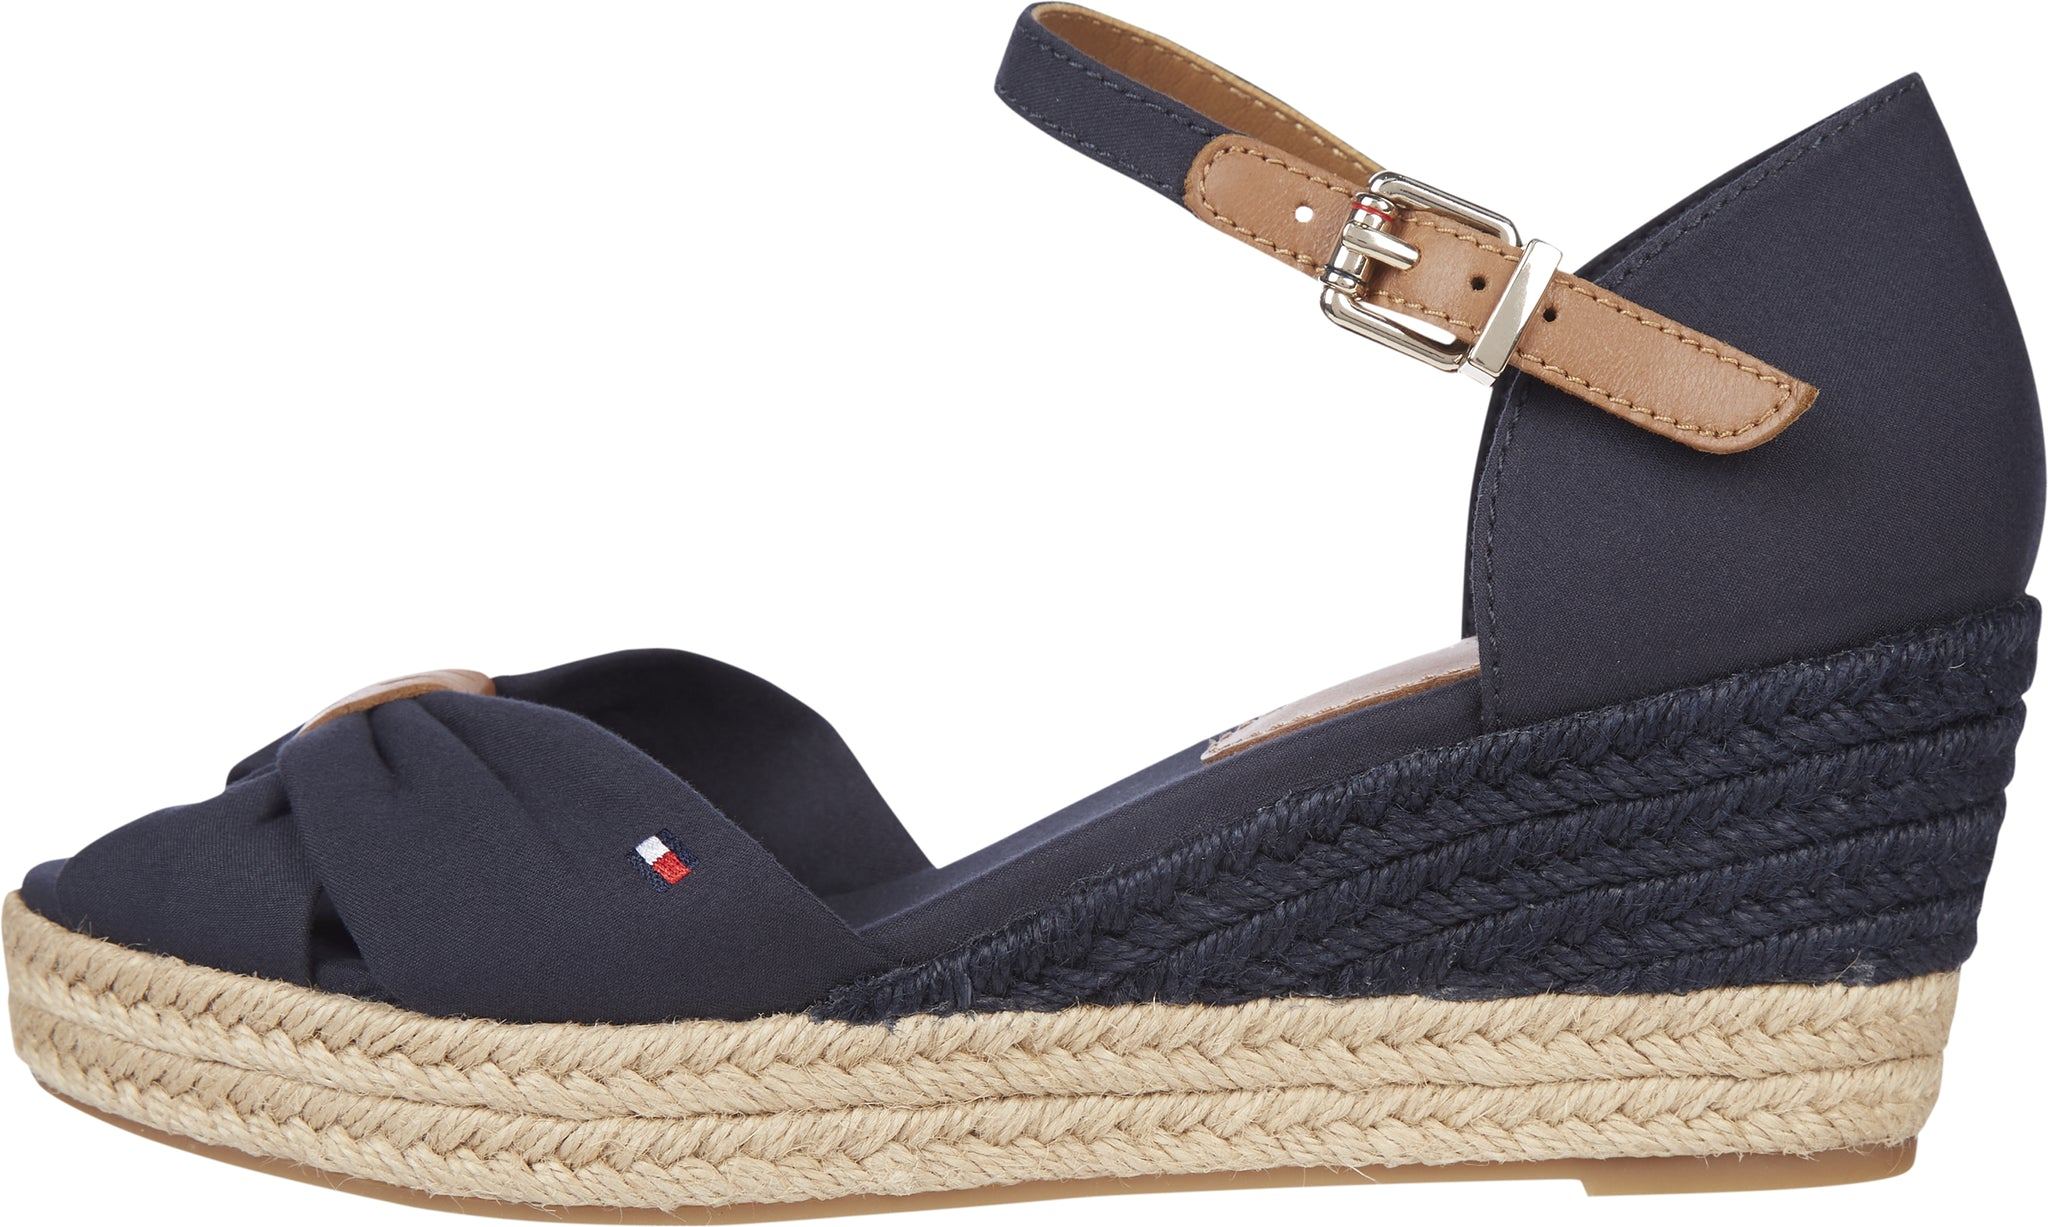 TOMMY HILFIGER BASIC OPEN TOE MID WEDGE